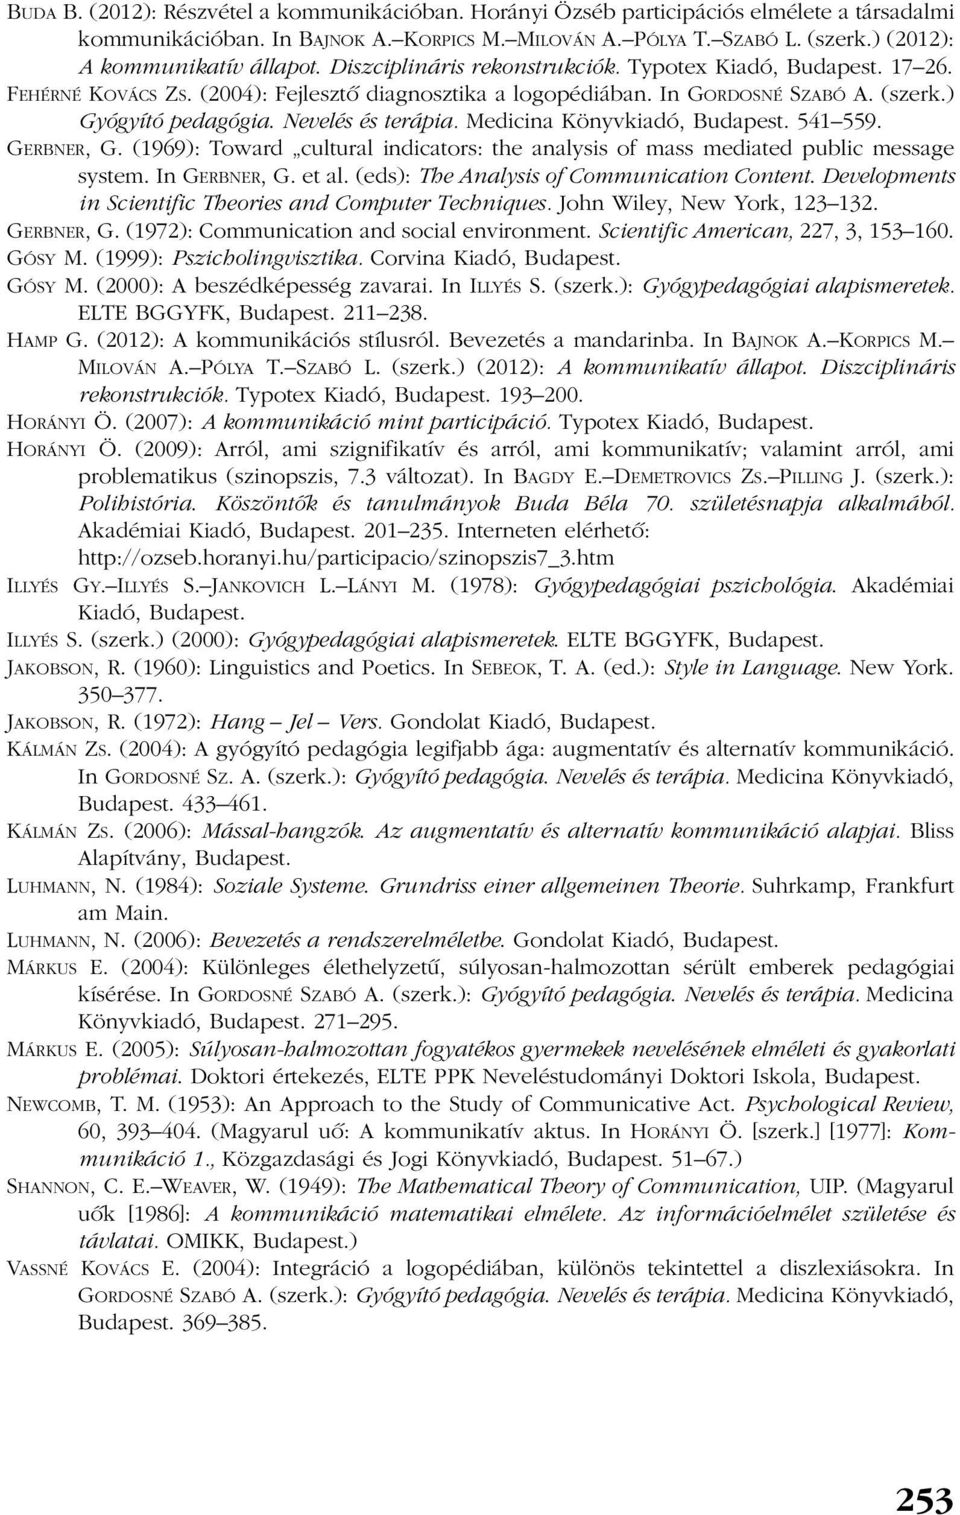 ) Gyógyító pedagógia. Nevelés és terápia. Medicina Könyvkiadó, Budapest. 541 559. GERBNER, G. (1969): Toward cultural indicators: the analysis of mass mediated public message system. In GERBNER, G.